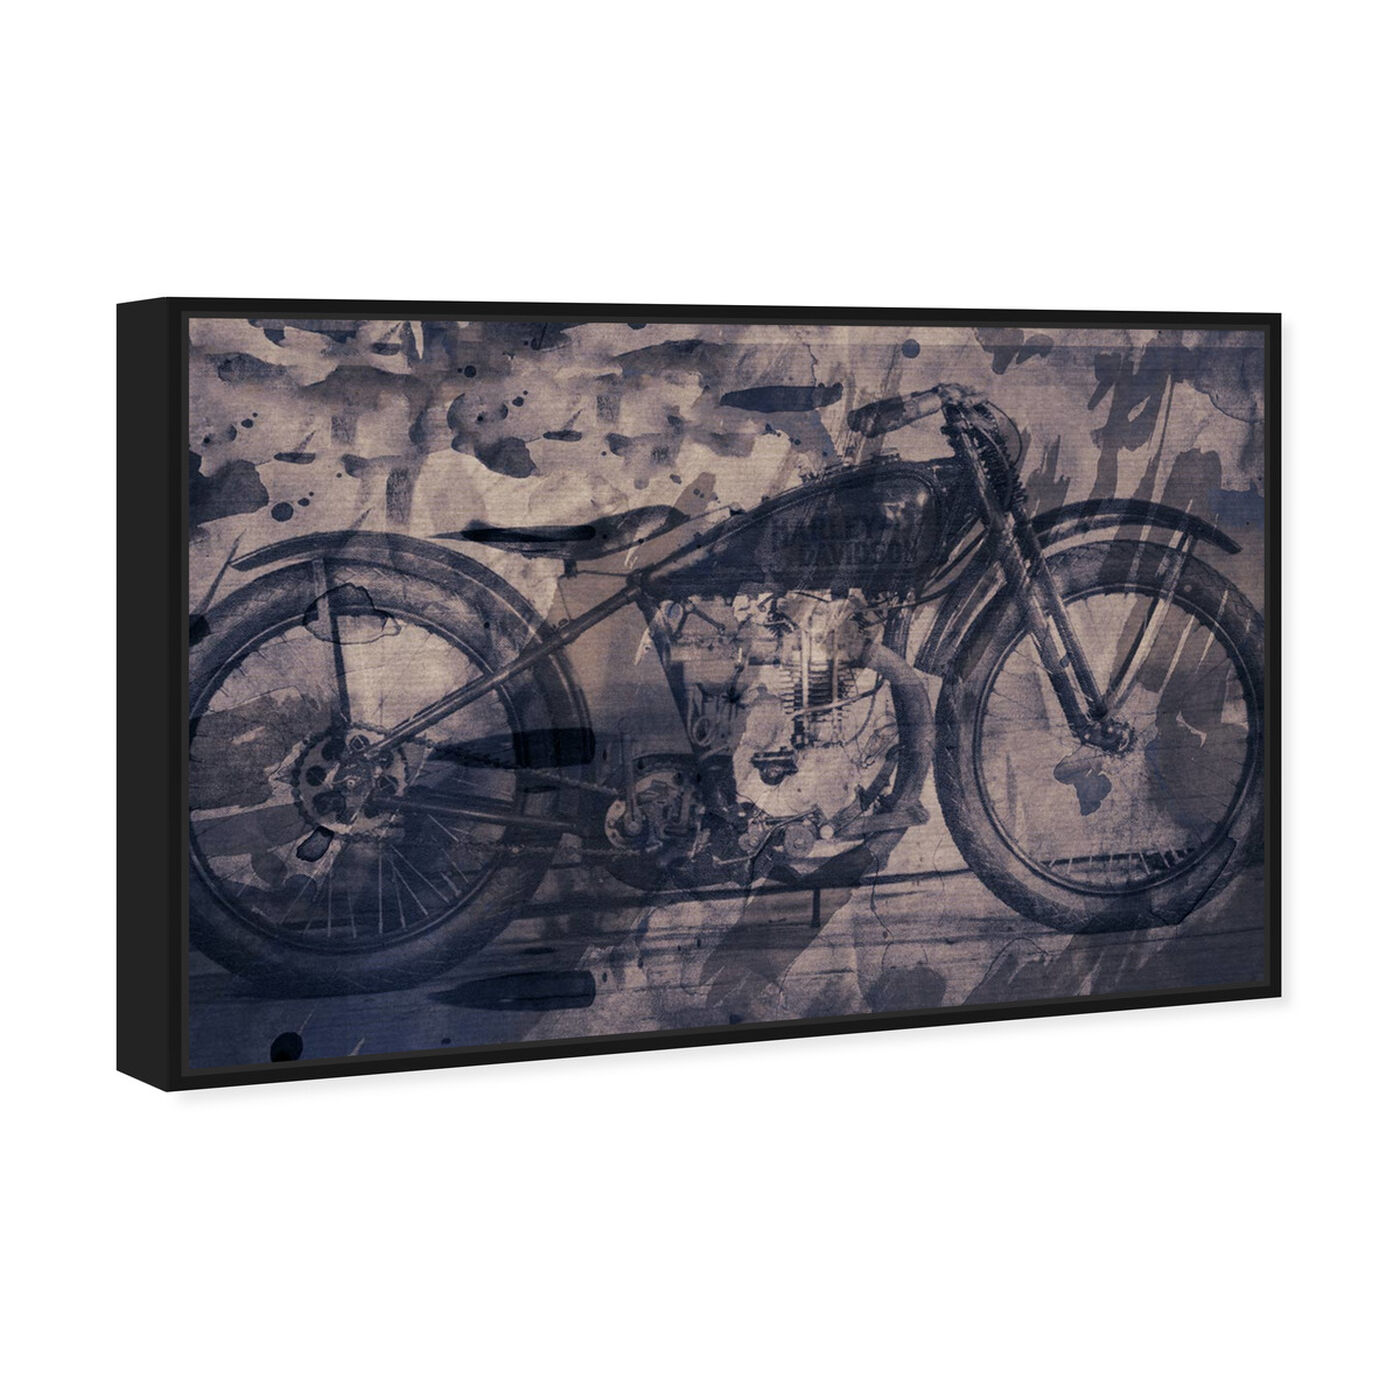 Angled view of Vintage Bike featuring transportation and motorcycles art.